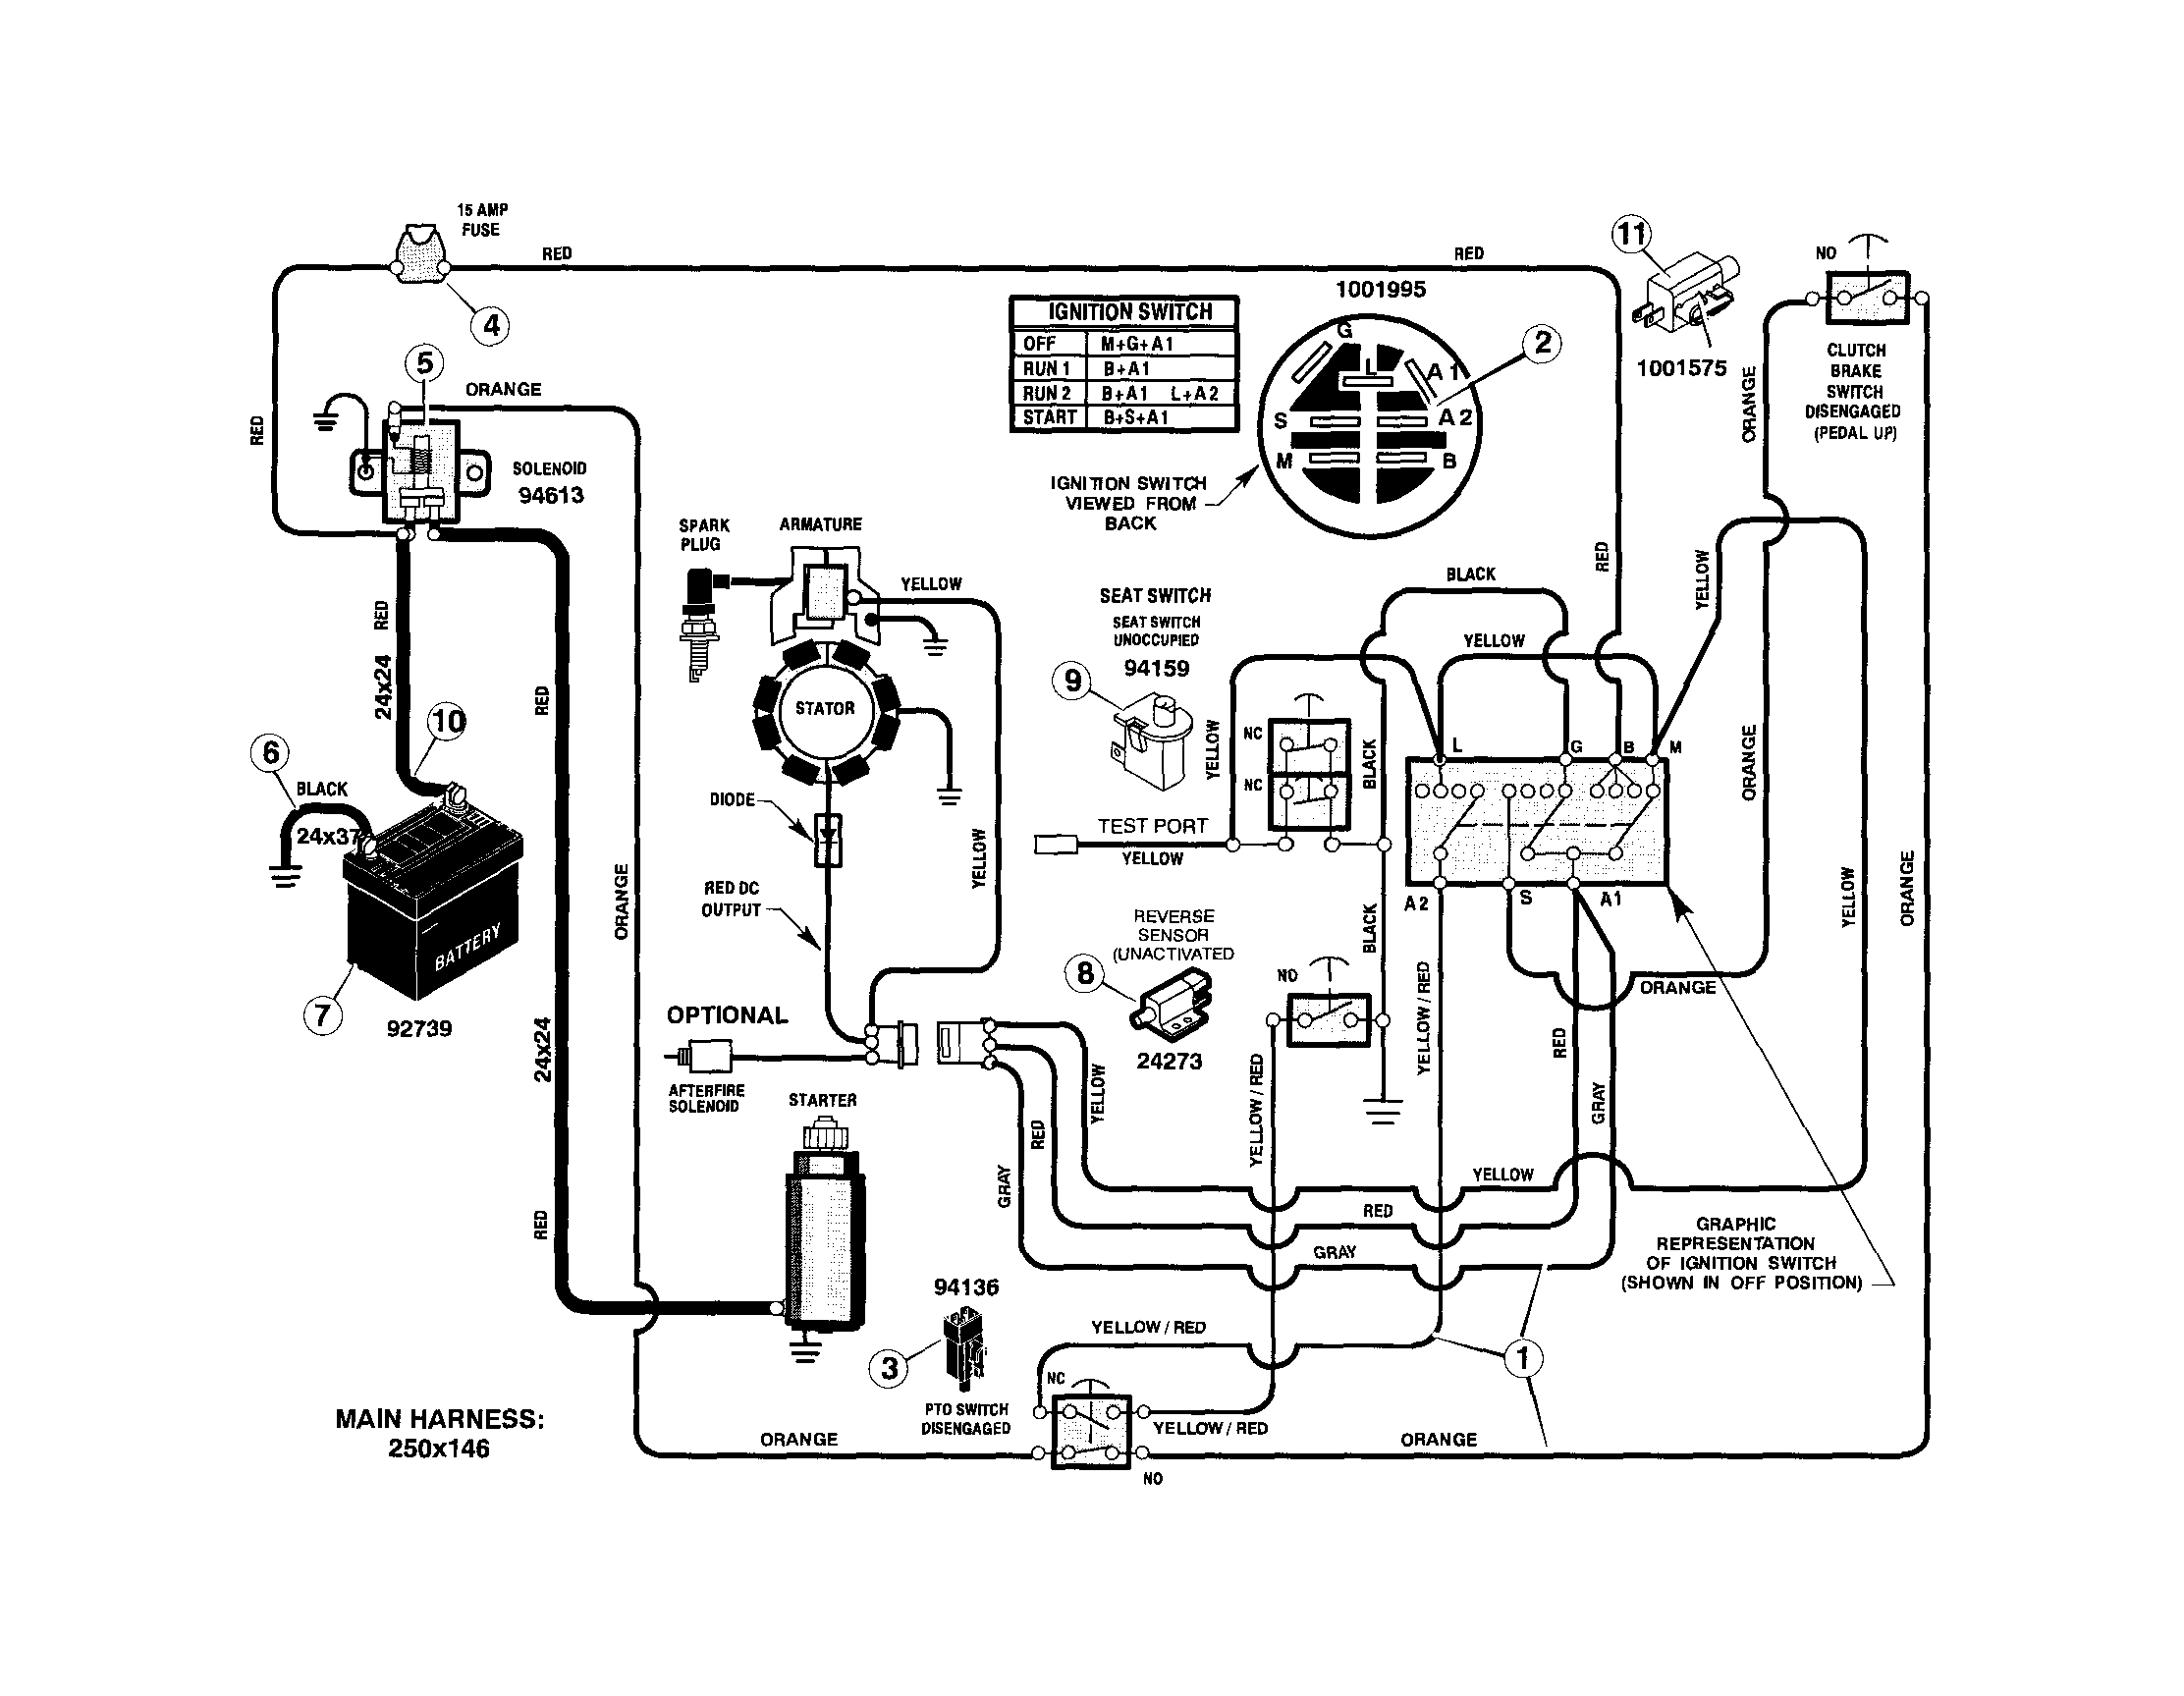 Capri Bayliner Boat Ignition Switch Wiring Diagram Boat